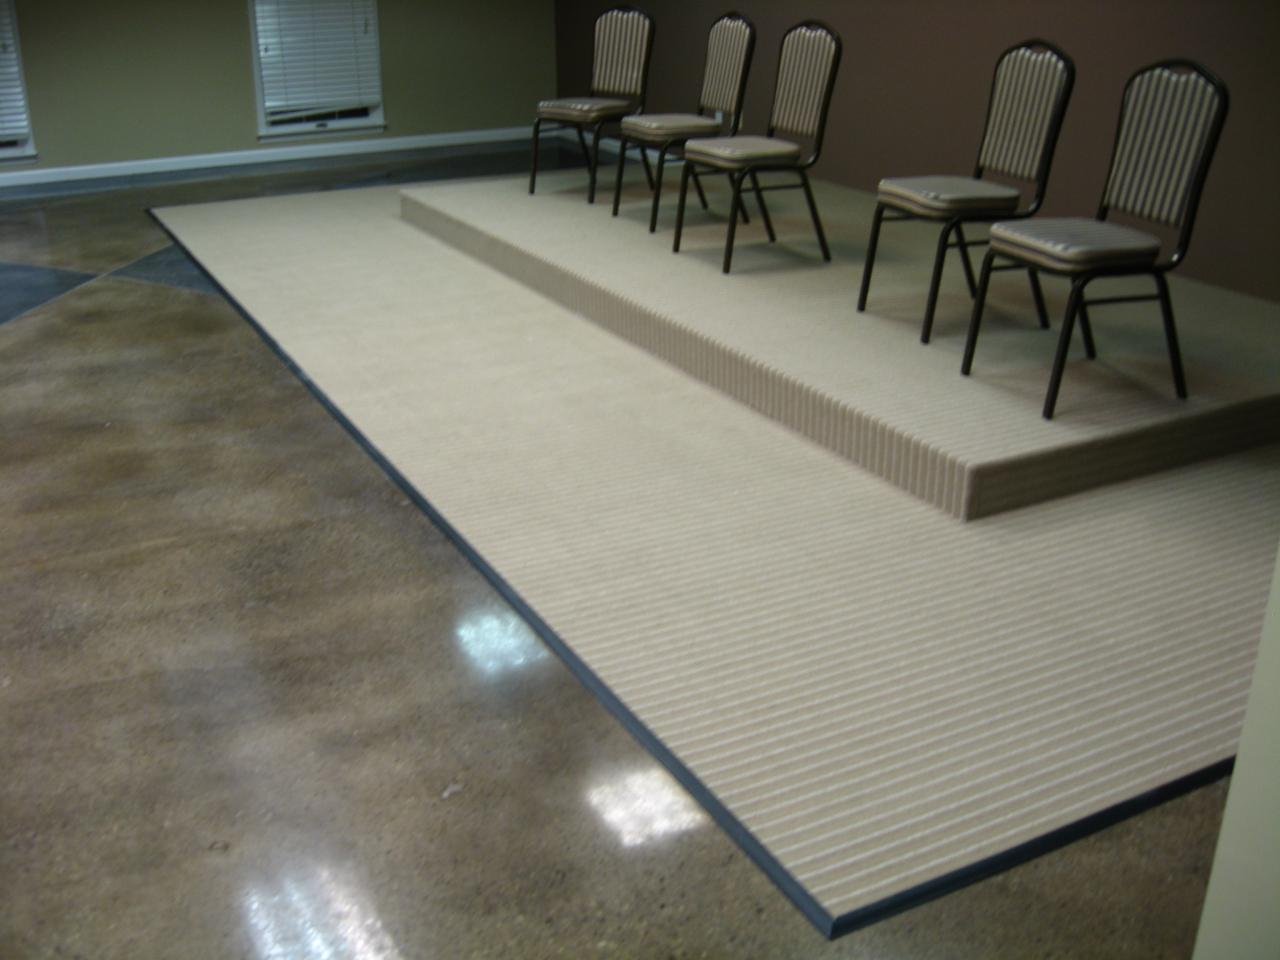 Gooden 39 s floors and more polished concrete for Floor and more